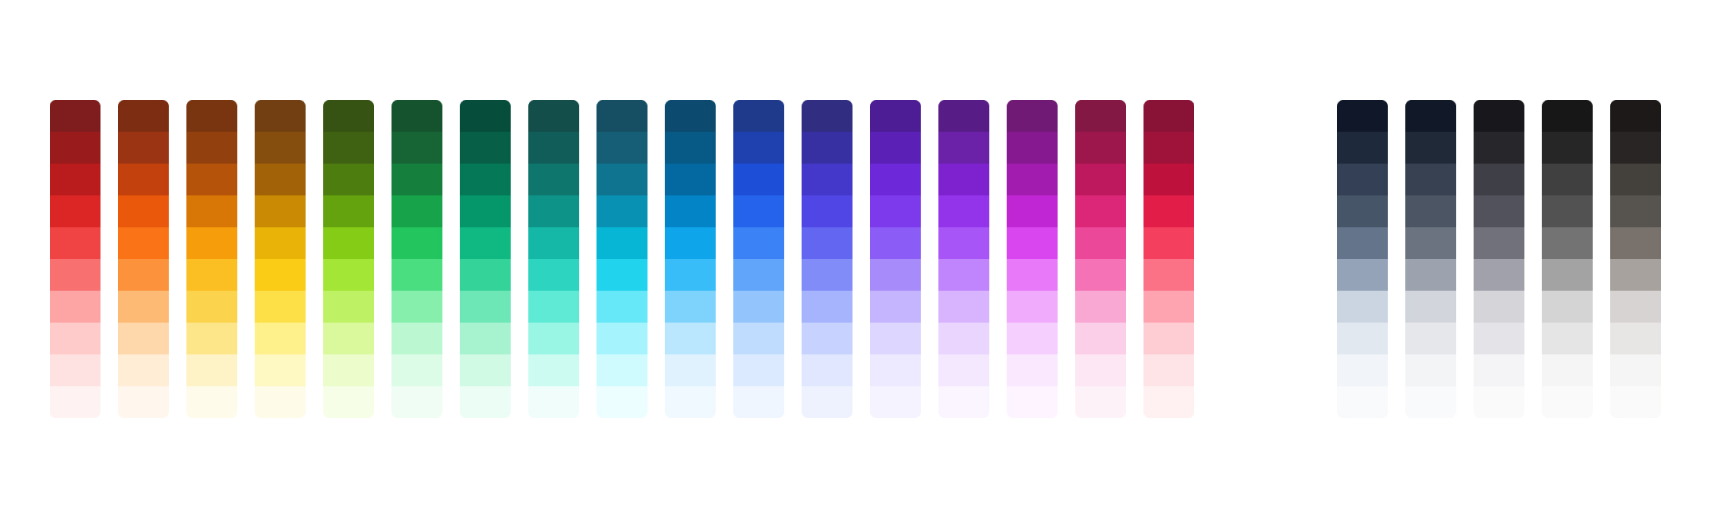 Tailwind 2.0 Color Palette